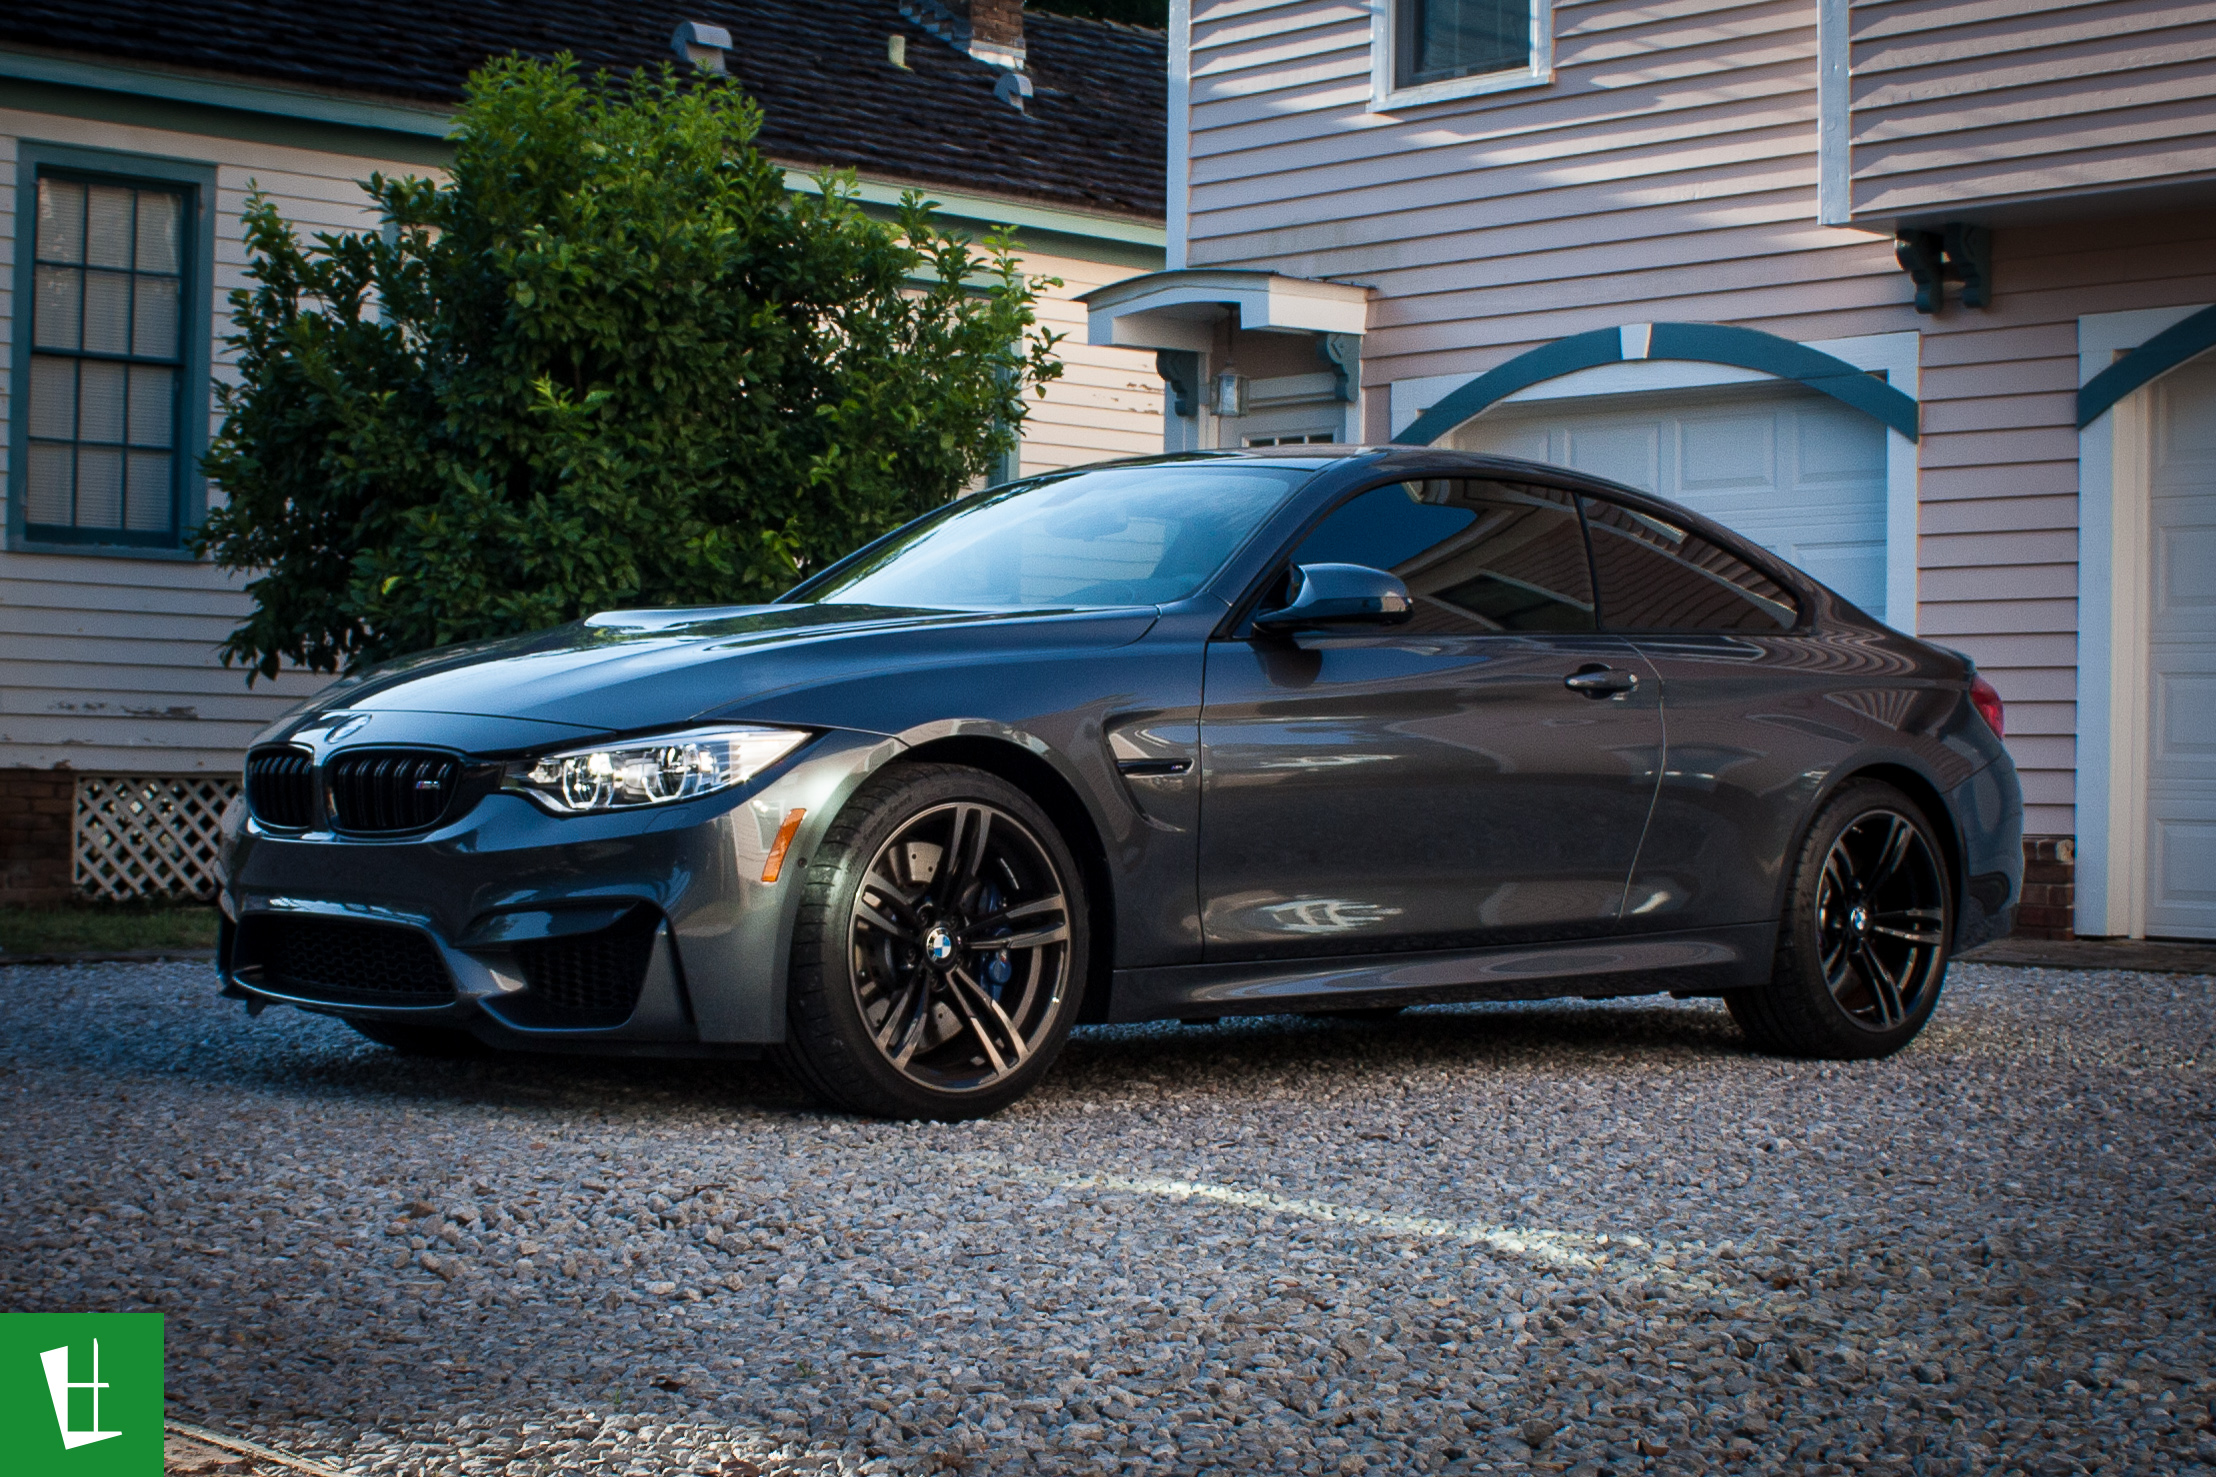 2015 Subaru Wrx For Sale >> 2015 BMW M4 Window Tinting